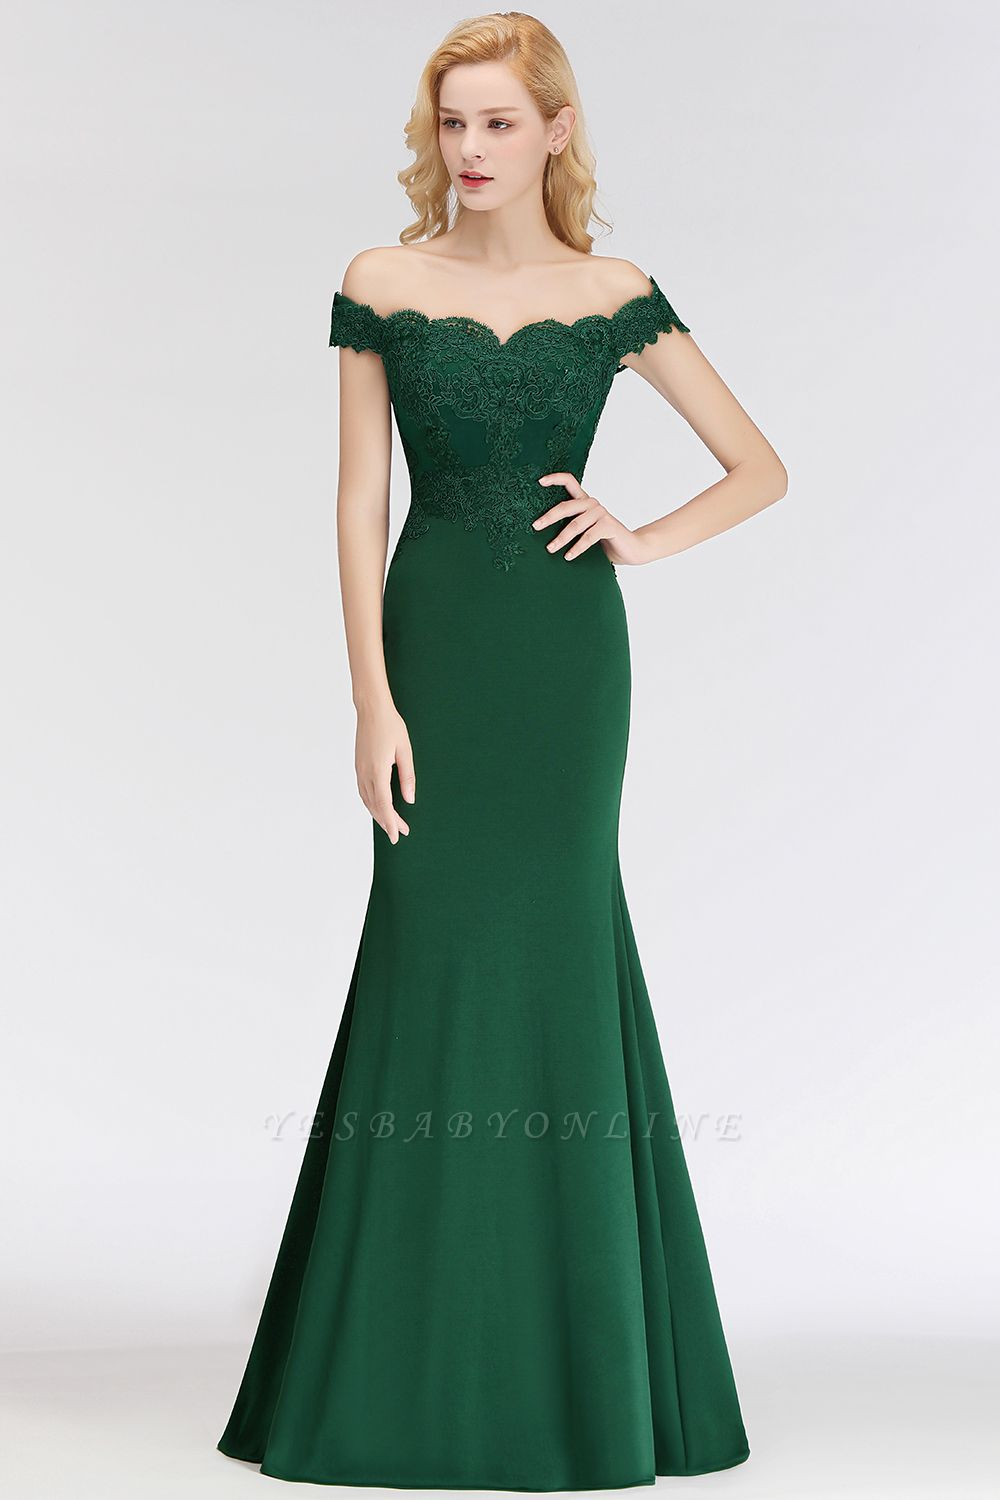 Cheap Mermaid Off-the-shoulder Long Appliques Satin Bridesmaid Dress in Stock